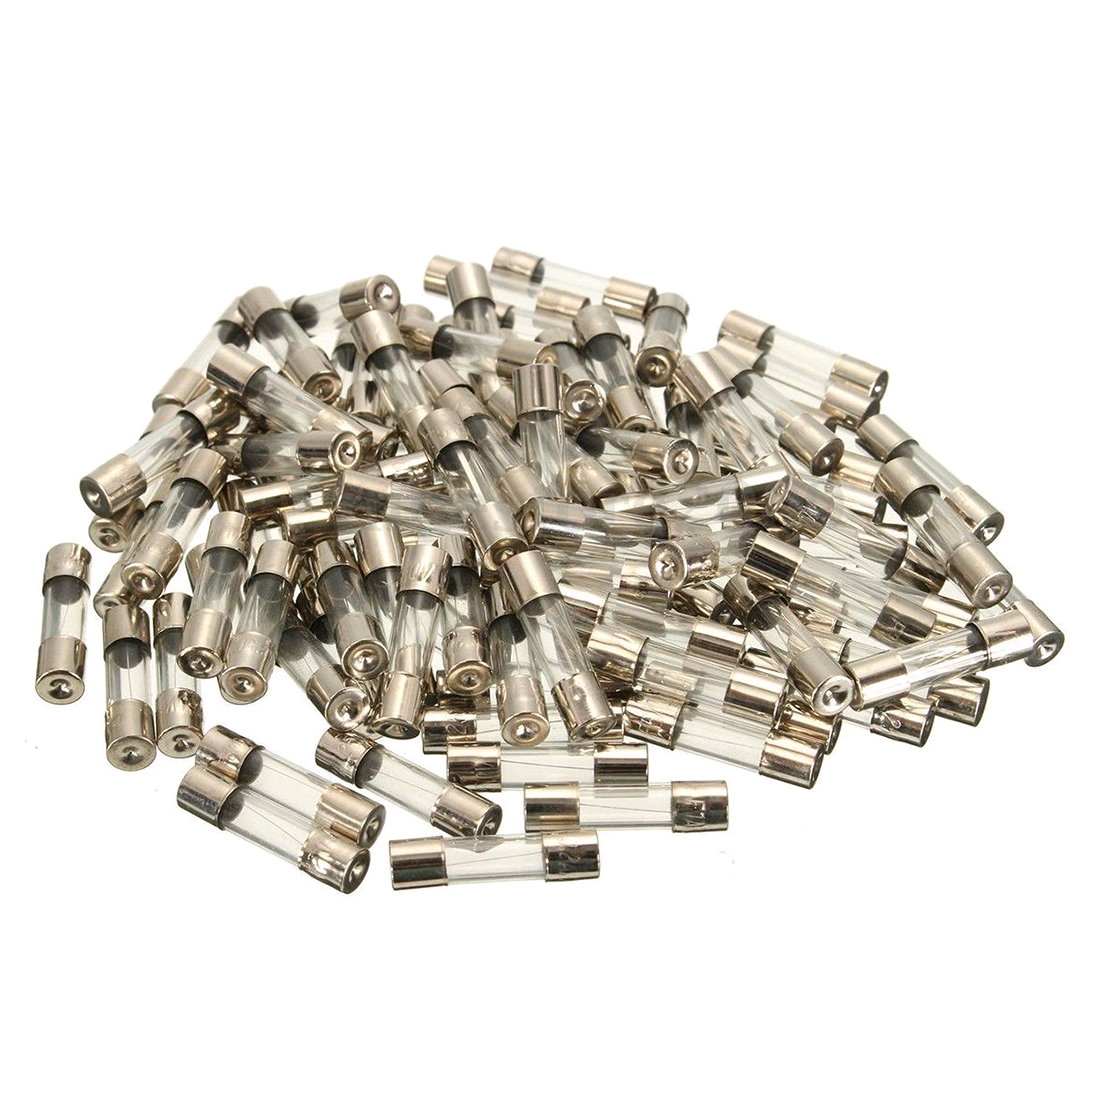 Glass Fuse 3.15a 5 x 20mm (F) Quick Blow Glass 250V